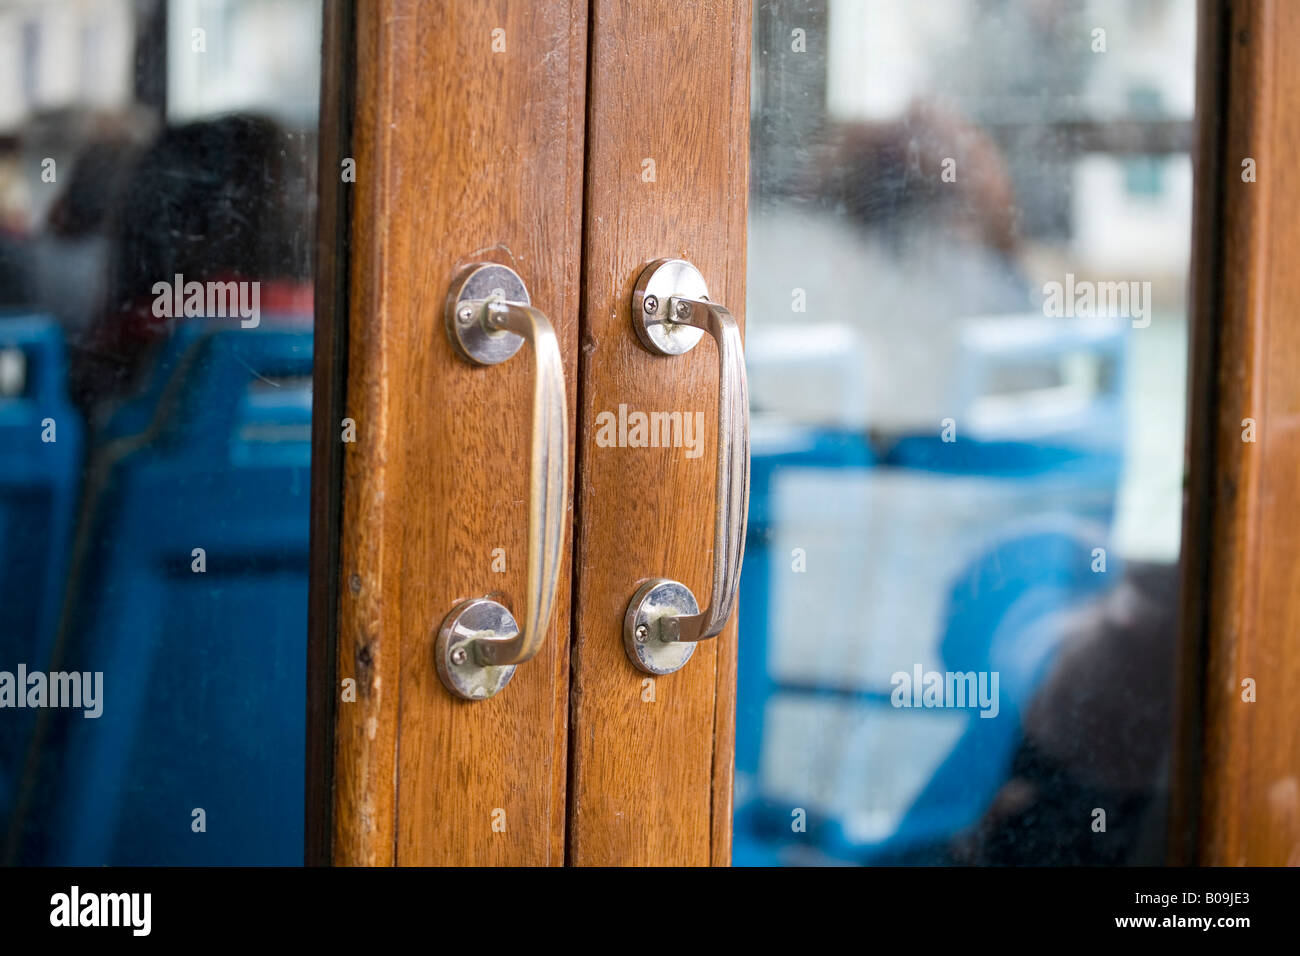 wooden doors on a water bus in Venice - Stock Image